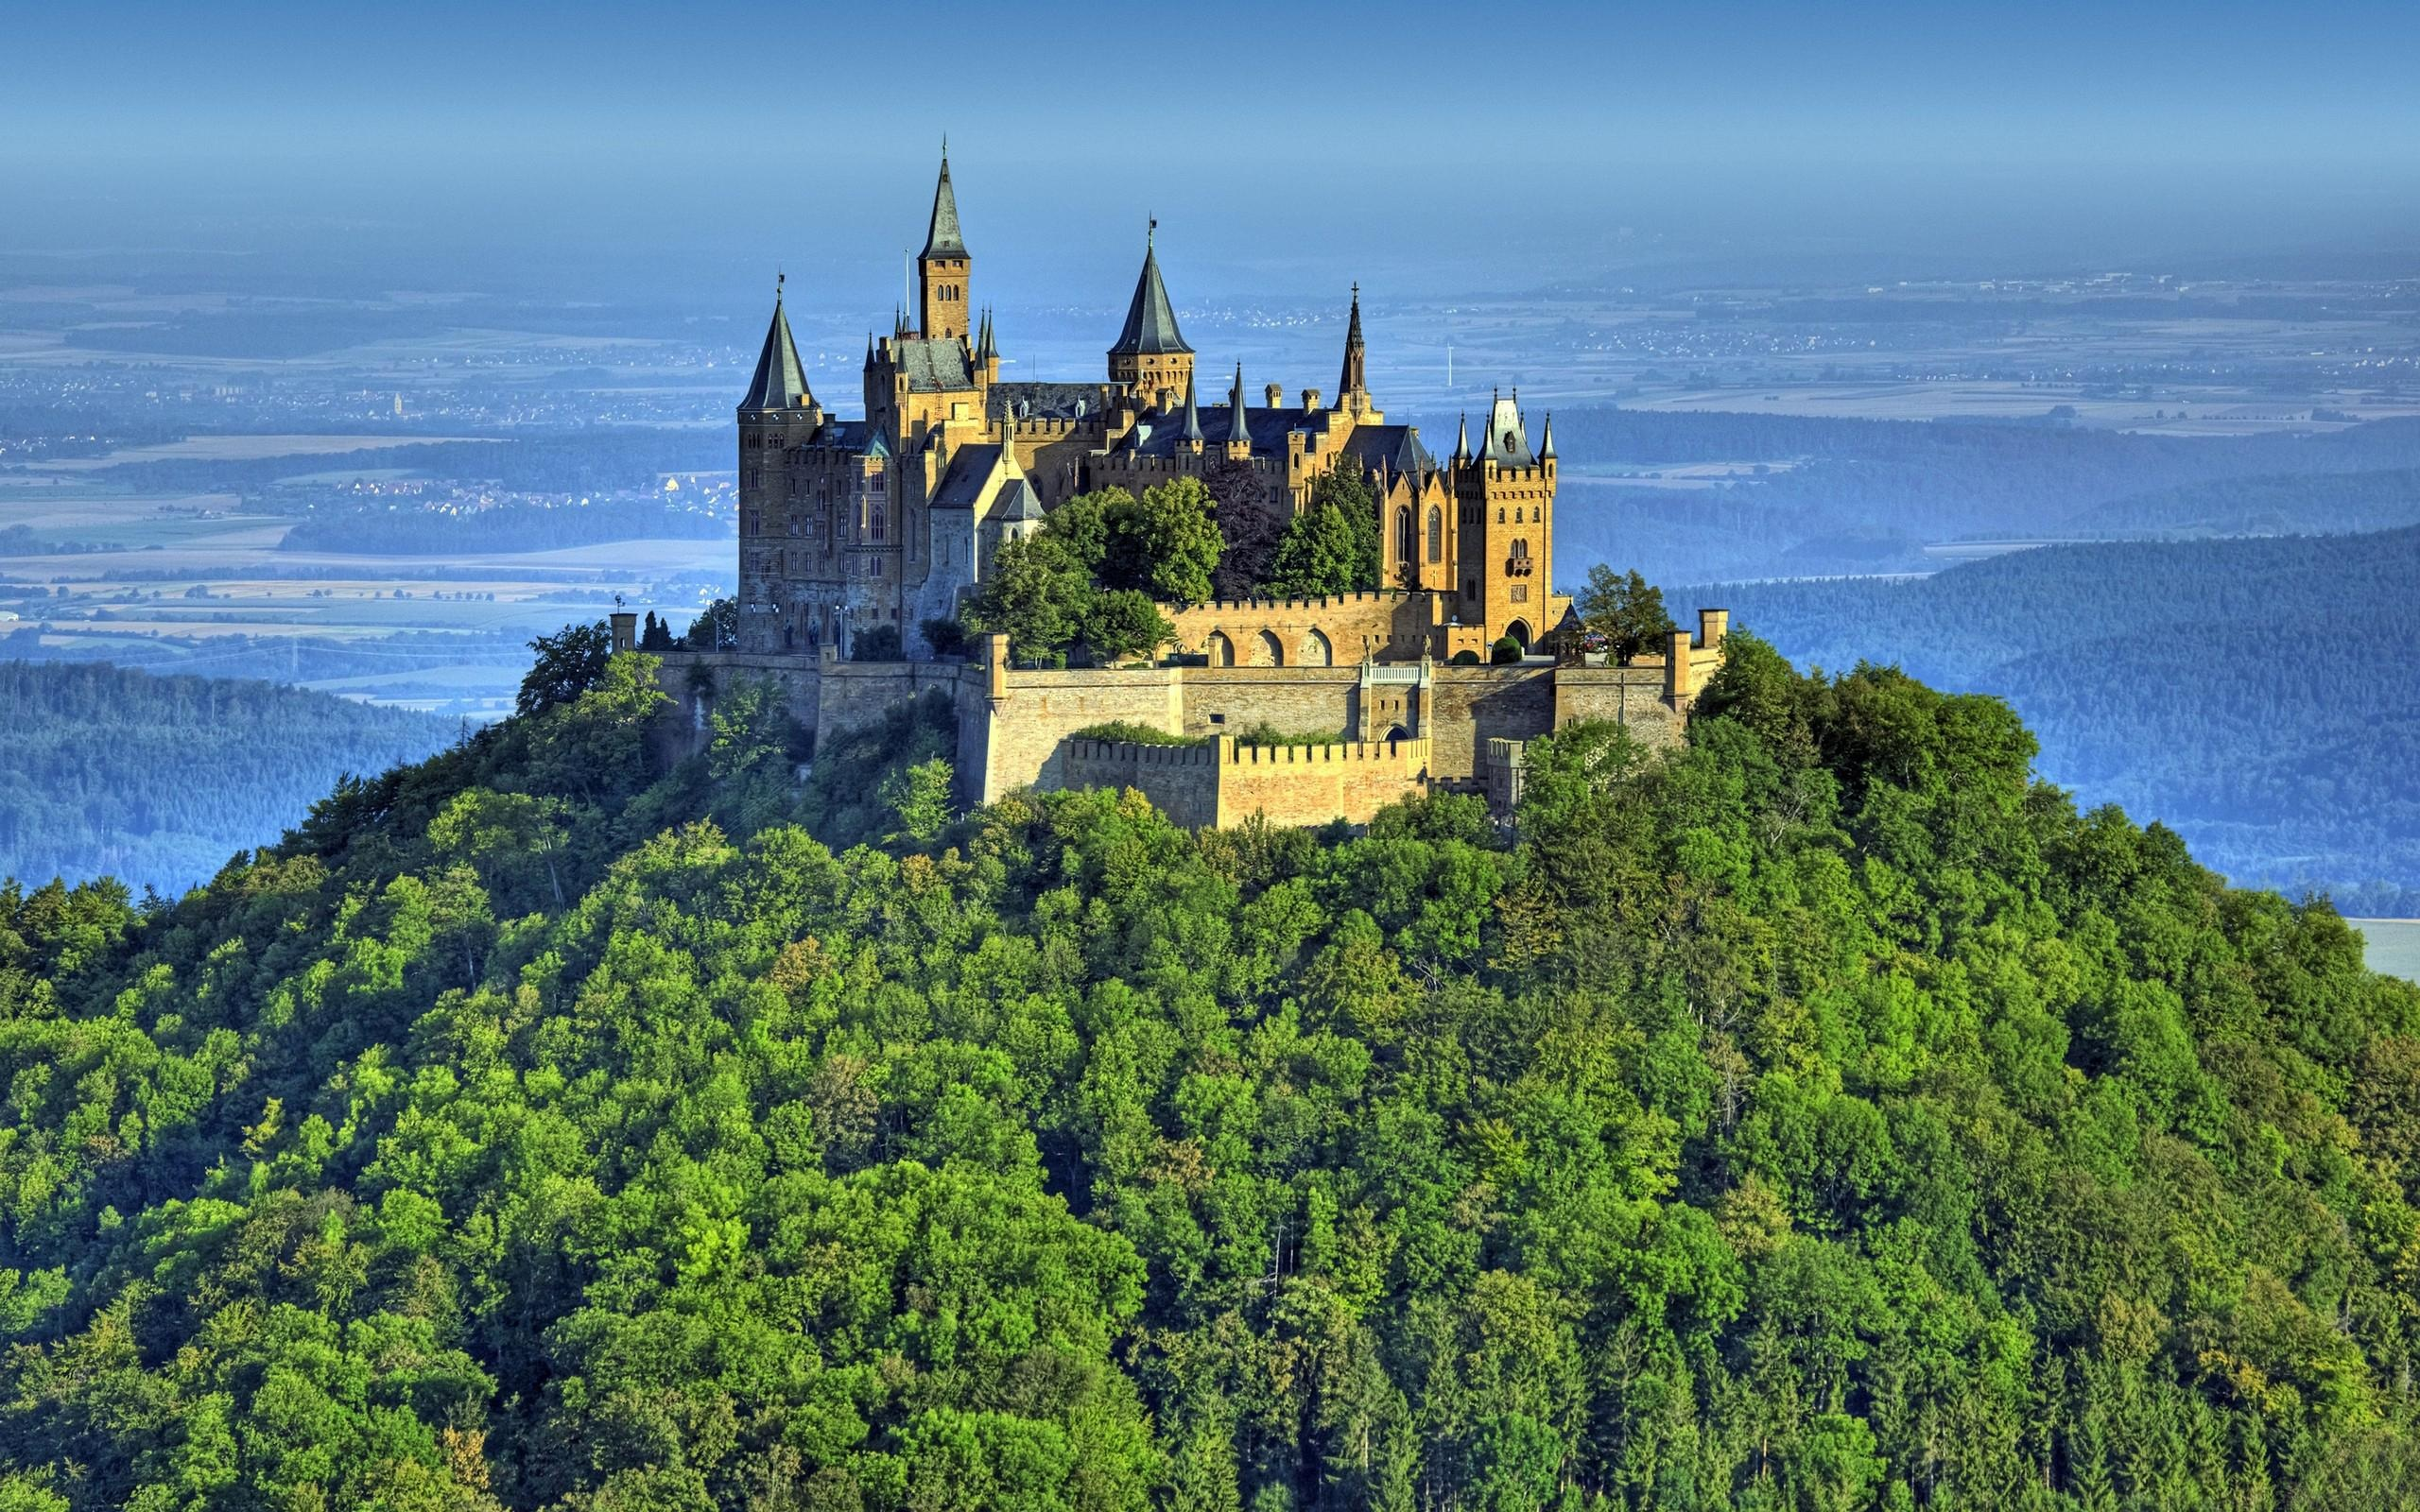 Hohenzollern Castle on the Hill in Germany 233.96 Kb